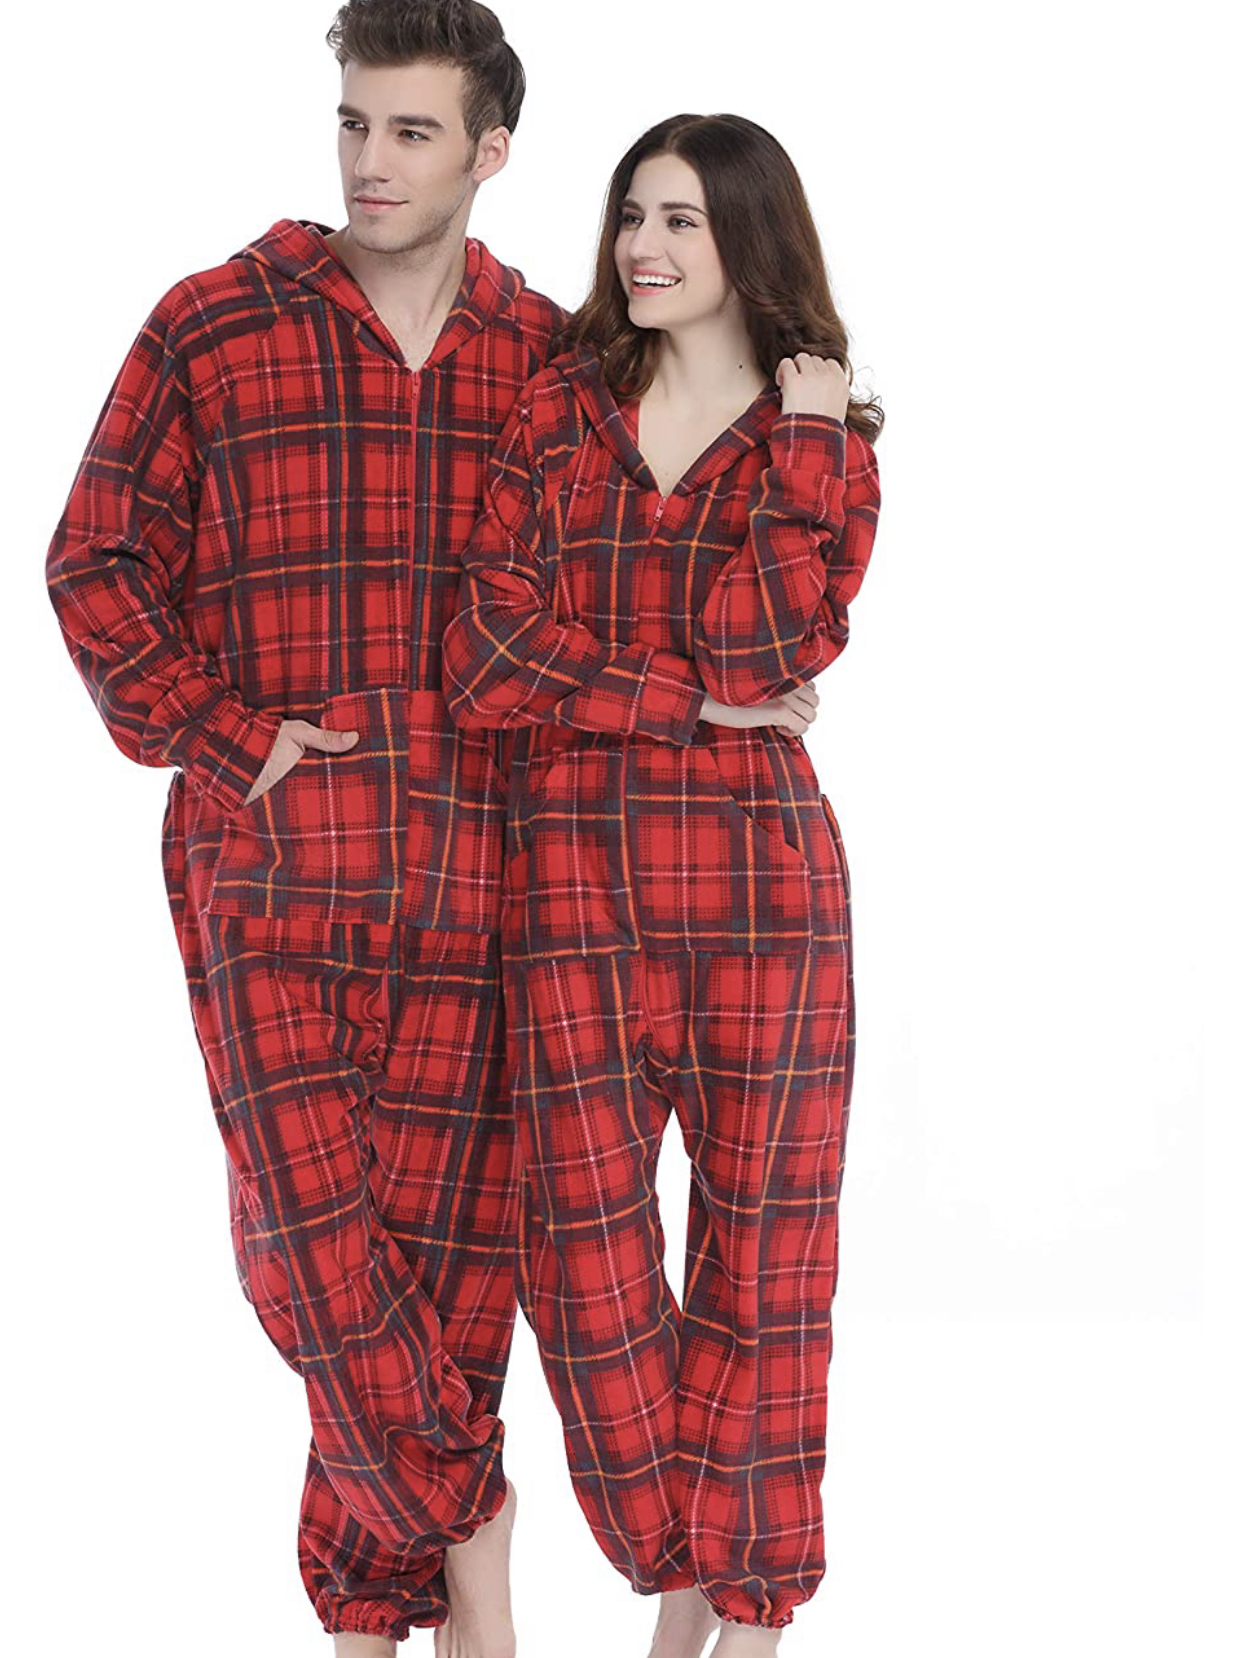 "<p>HIS and HERS.{&nbsp;}{&nbsp;}<a  href=""https://www.amazon.com/XMASCOMING-Womens-Hooded-Fleece-Pajamas/dp/B01KBDVKH2/ref=sxin_15_ac_m_rm?ac_md=0-0-bWF0Y2hpbmcgY2hyaXN0bWFzIHBqcyBmb3IgY291cGxlcw%3D%3D-ac_d_rm&cv_ct_cx=matching+christmas+pjs+for+couples&dchild=1&keywords=matching+christmas+pjs+for+couples&pd_rd_i=B01KBDVKH2&pd_rd_r=23d1dccb-0a24-4573-97c6-0bfe1b81df89&pd_rd_w=PHtsW&pd_rd_wg=IbsRK&pf_rd_p=8434de5f-bf35-4dd2-8673-19b1e67d68d4&pf_rd_r=EG4PK37KCZ1SYRSQ5TBX&psc=1&qid=1606623944&sprefix=match&sr=1-1-87203c69-9404-44ba-aa52-290406ffe53a"" target=""_blank"" title=""https://www.amazon.com/XMASCOMING-Womens-Hooded-Fleece-Pajamas/dp/B01KBDVKH2/ref=sxin_15_ac_m_rm?ac_md=0-0-bWF0Y2hpbmcgY2hyaXN0bWFzIHBqcyBmb3IgY291cGxlcw%3D%3D-ac_d_rm&cv_ct_cx=matching+christmas+pjs+for+couples&dchild=1&keywords=matching+christmas+pjs+for+couples&pd_rd_i=B01KBDVKH2&pd_rd_r=23d1dccb-0a24-4573-97c6-0bfe1b81df89&pd_rd_w=PHtsW&pd_rd_wg=IbsRK&pf_rd_p=8434de5f-bf35-4dd2-8673-19b1e67d68d4&pf_rd_r=EG4PK37KCZ1SYRSQ5TBX&psc=1&qid=1606623944&sprefix=match&sr=1-1-87203c69-9404-44ba-aa52-290406ffe53a"">Shop the look</a>.{&nbsp;} (Image: Amazon){&nbsp;}</p>"